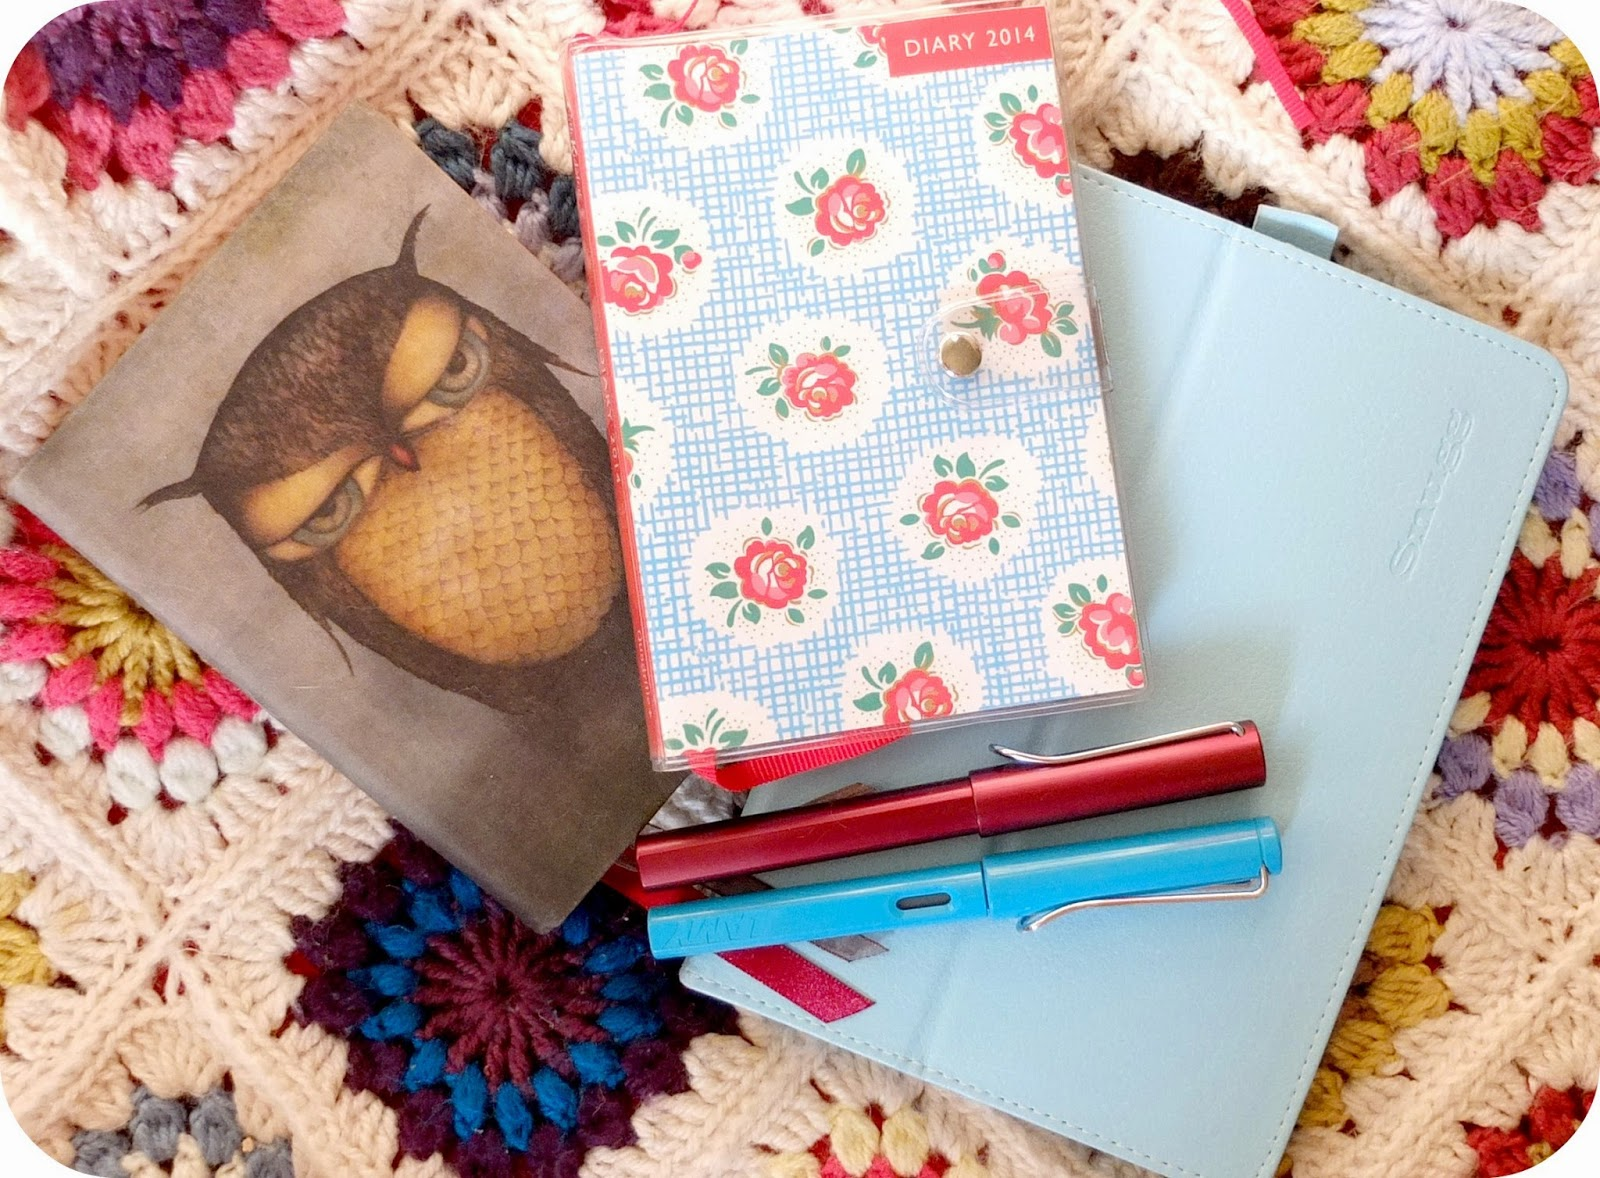 Stationary and organisation on Hello Terri Lowe, UK lifestyle blog!